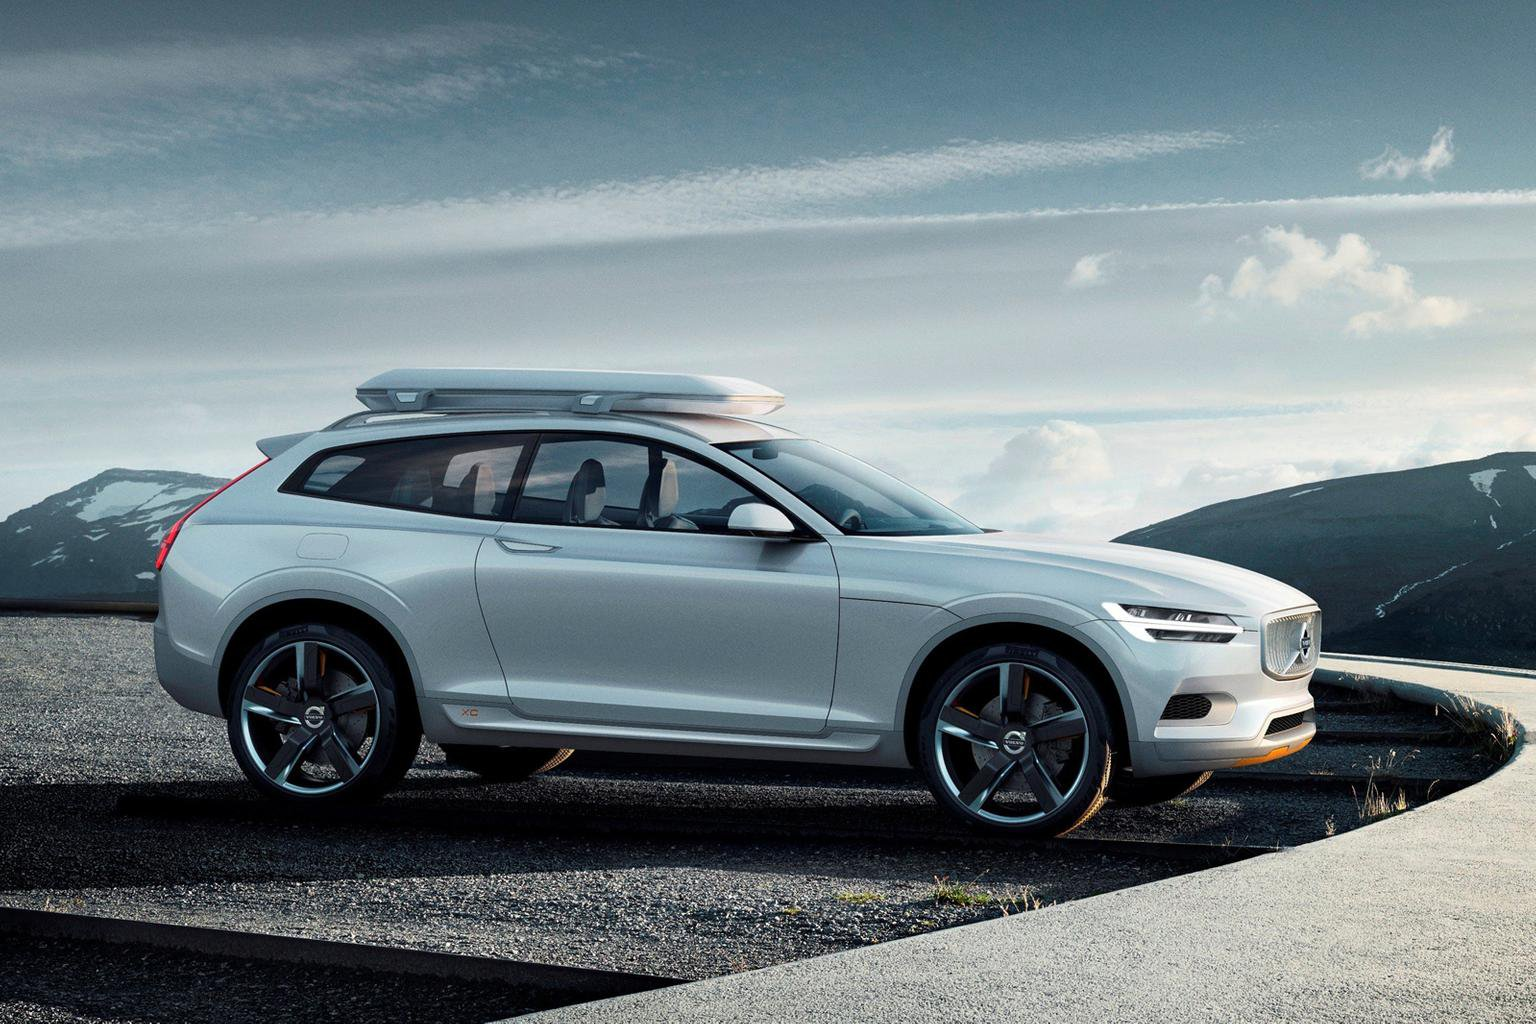 New 2015 Volvo XC90 - all you need to know